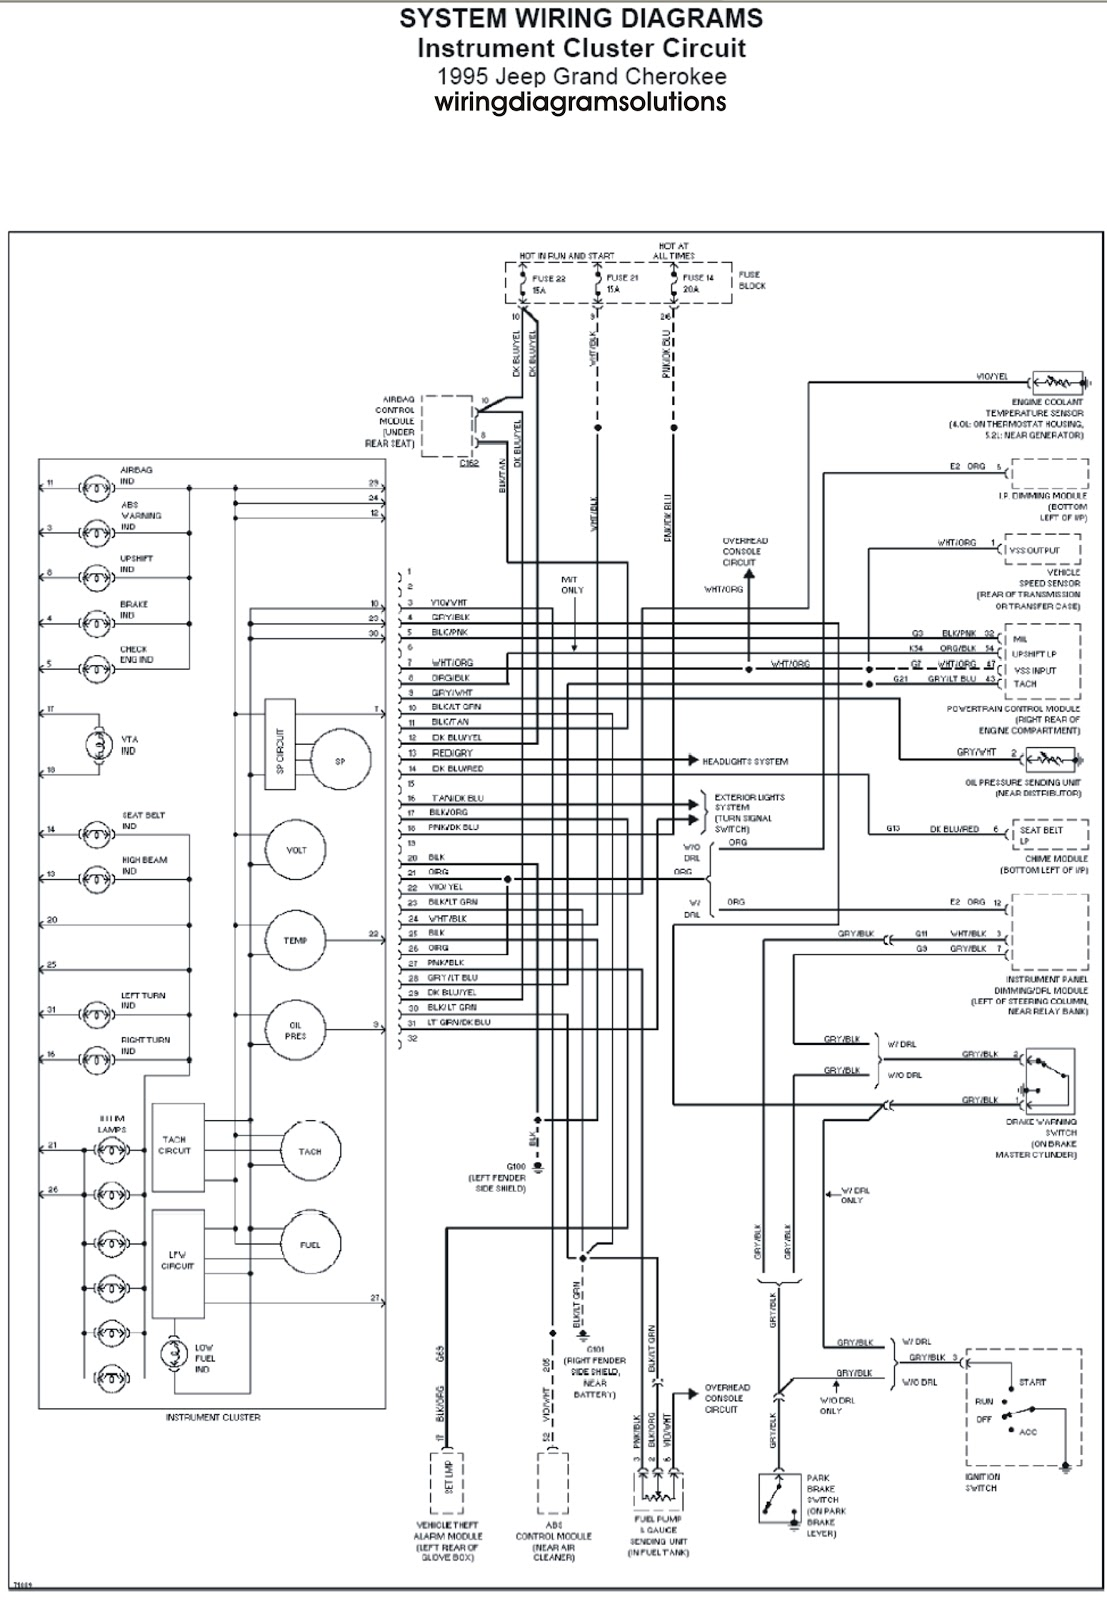 2004 jeep grand cherokee wiring harness diagram just wiring data jeep grand cherokee fuel pressure regulator [ 1107 x 1600 Pixel ]